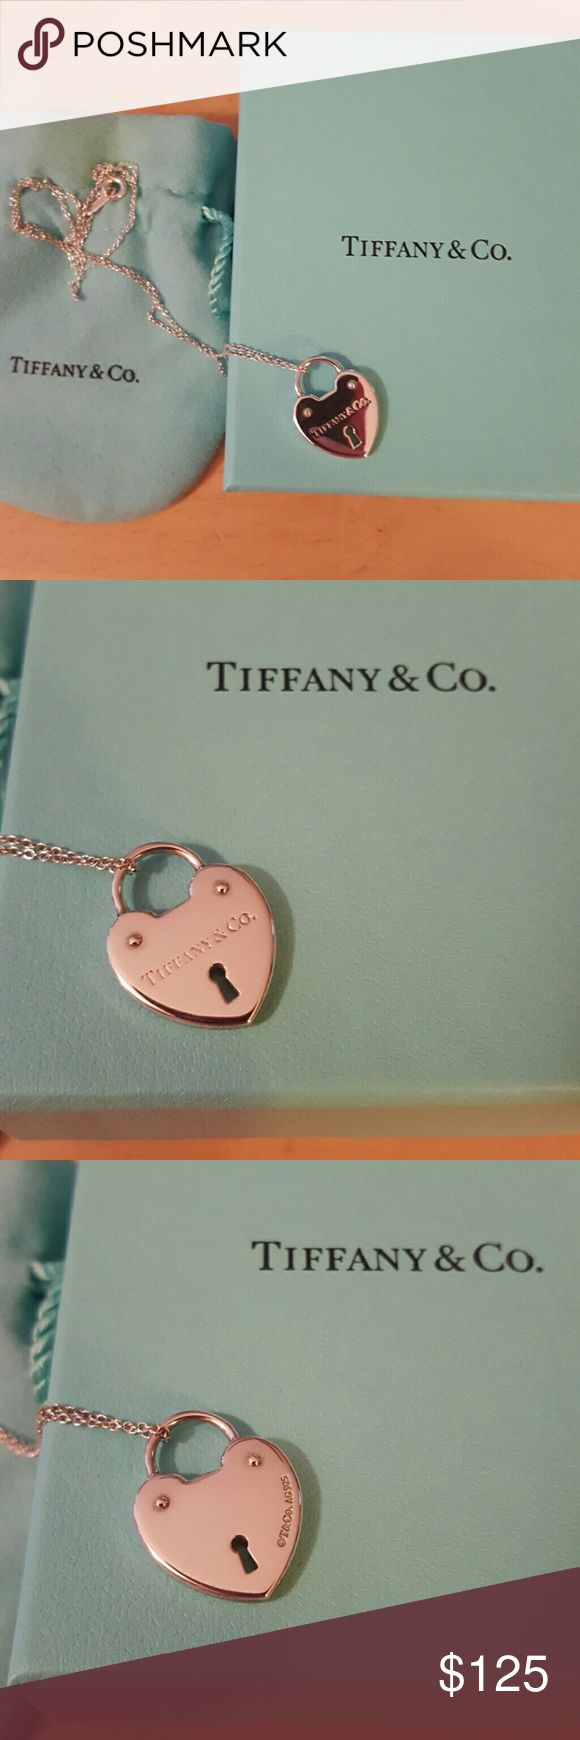 Tiffany & Co Sterling Silver Necklace Authentic Tiffany & Co Sterling Silver heart locket necklace. Tiffany & Co. Jewelry Necklaces